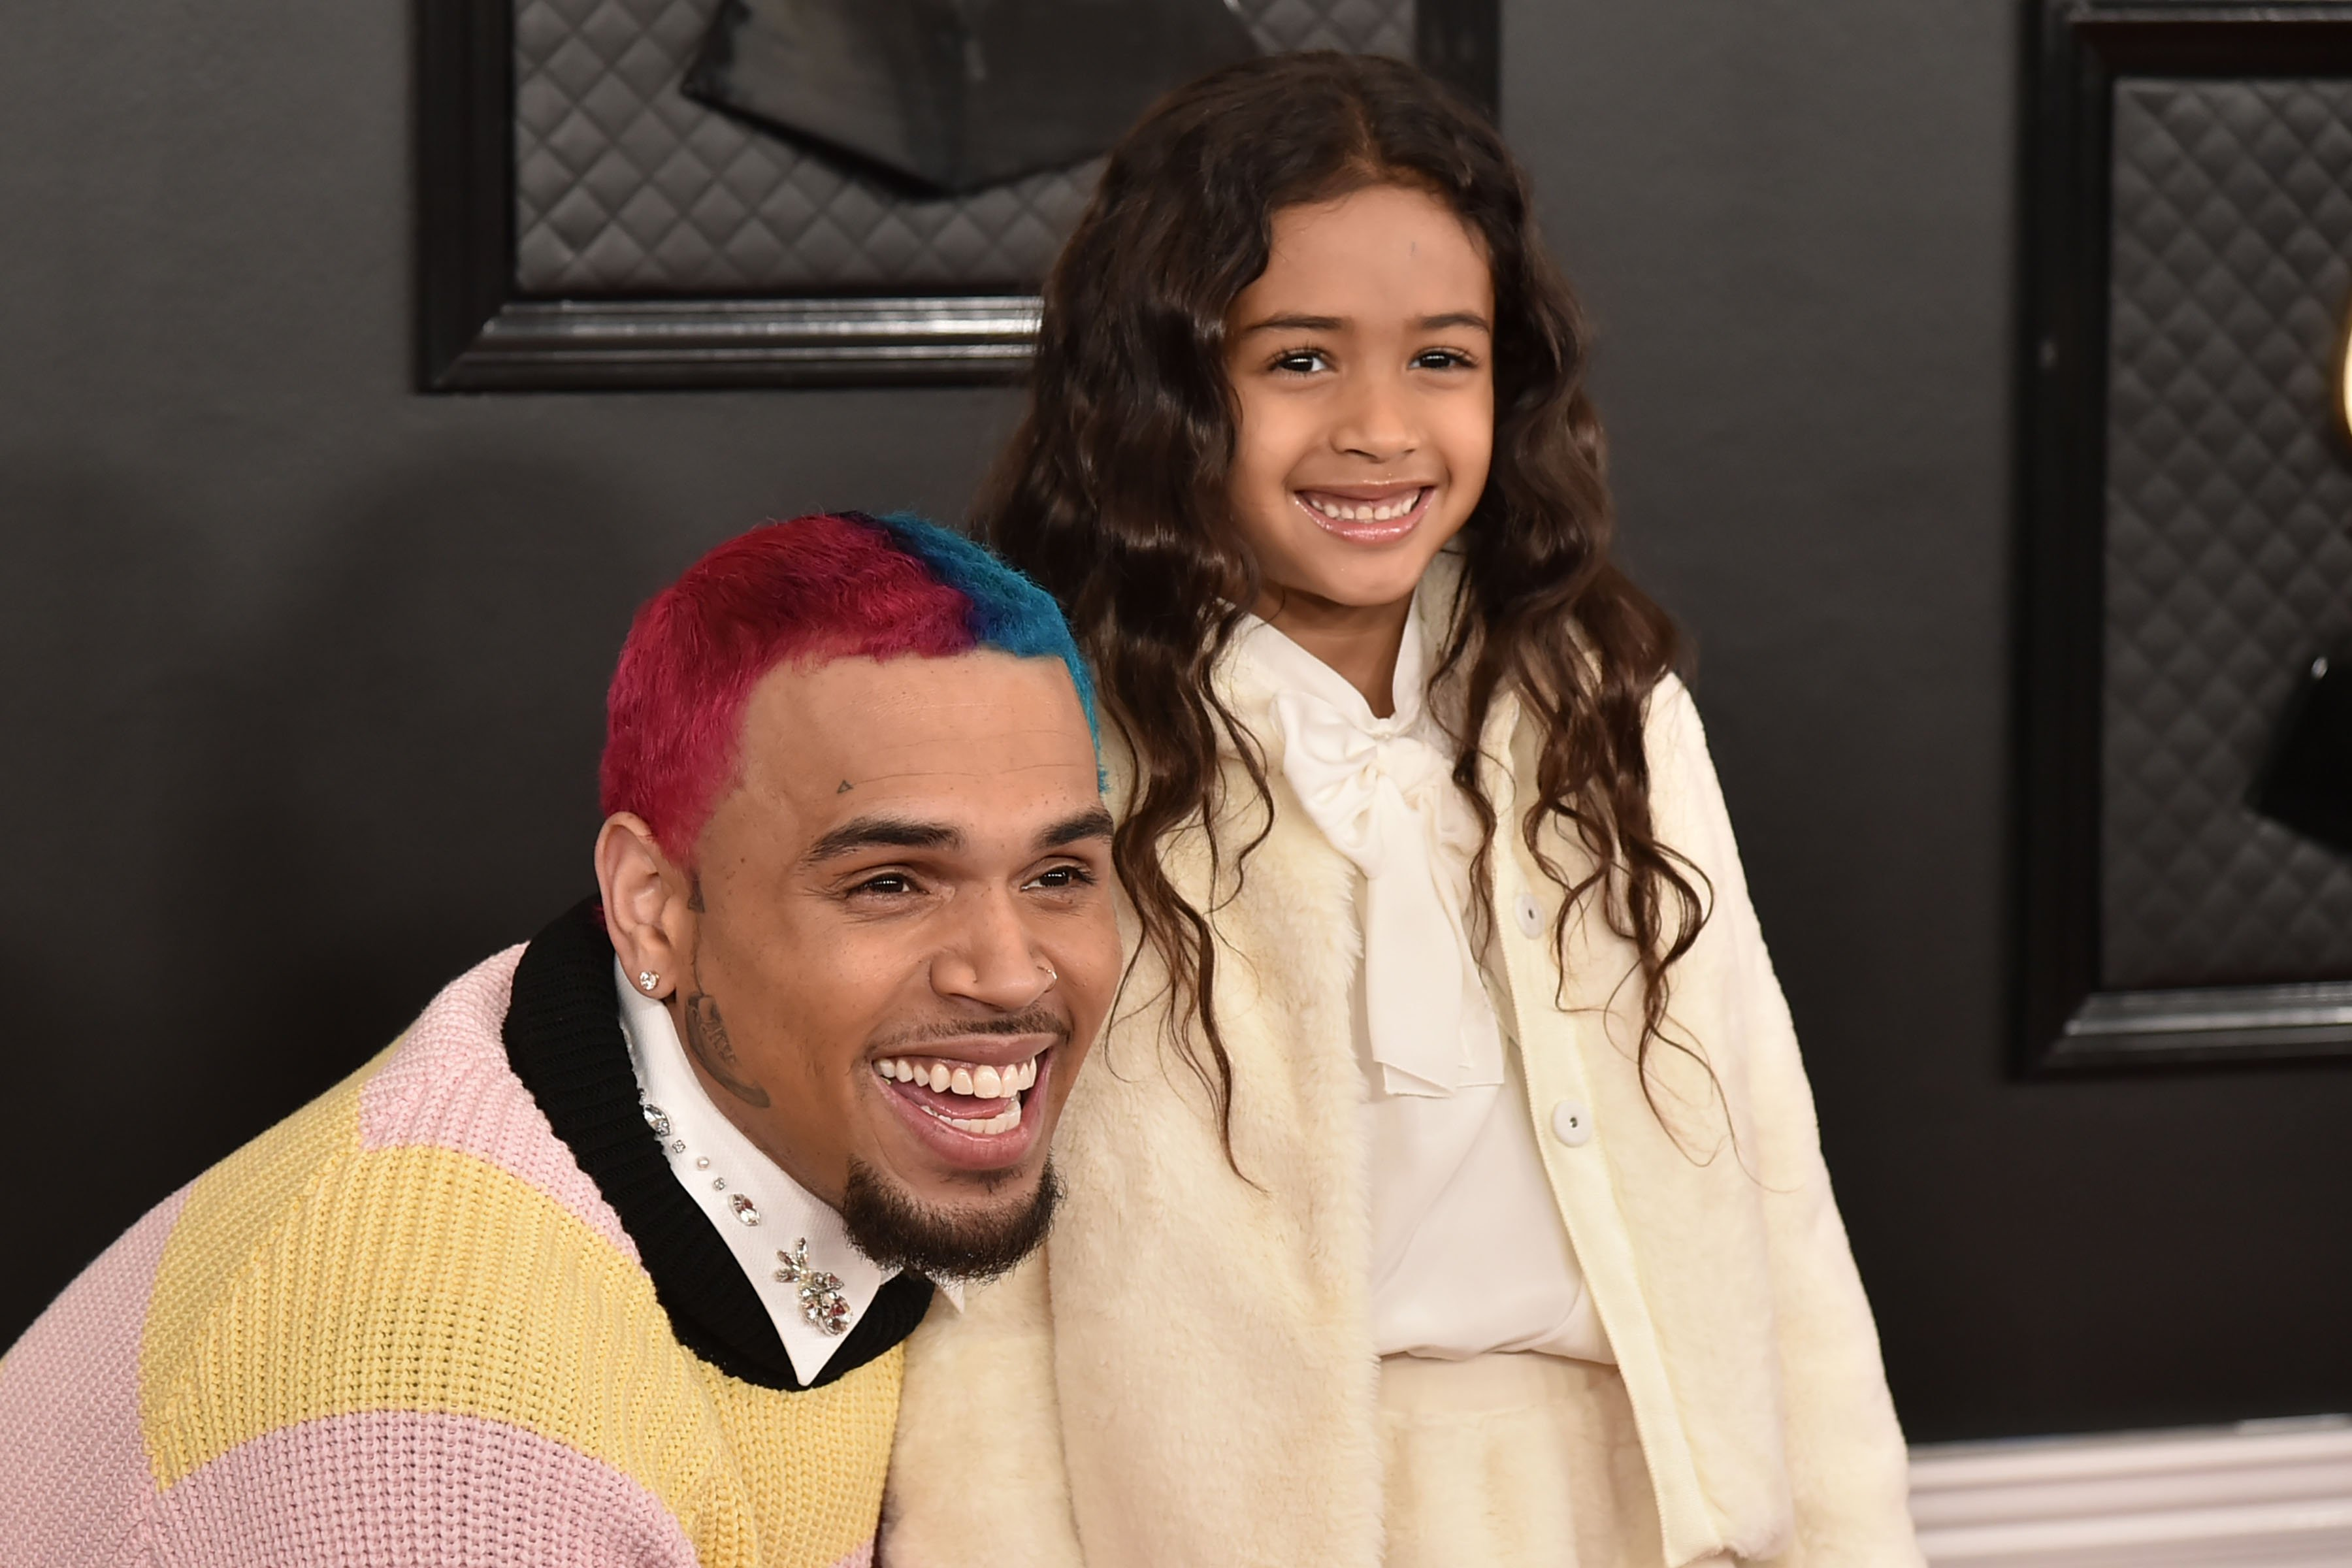 Chris Brown and Royalty Brown at the 62nd Annual Grammy Awards at Staples Center on January 26, 2020 in Los Angeles, CA.| Source: Getty Images